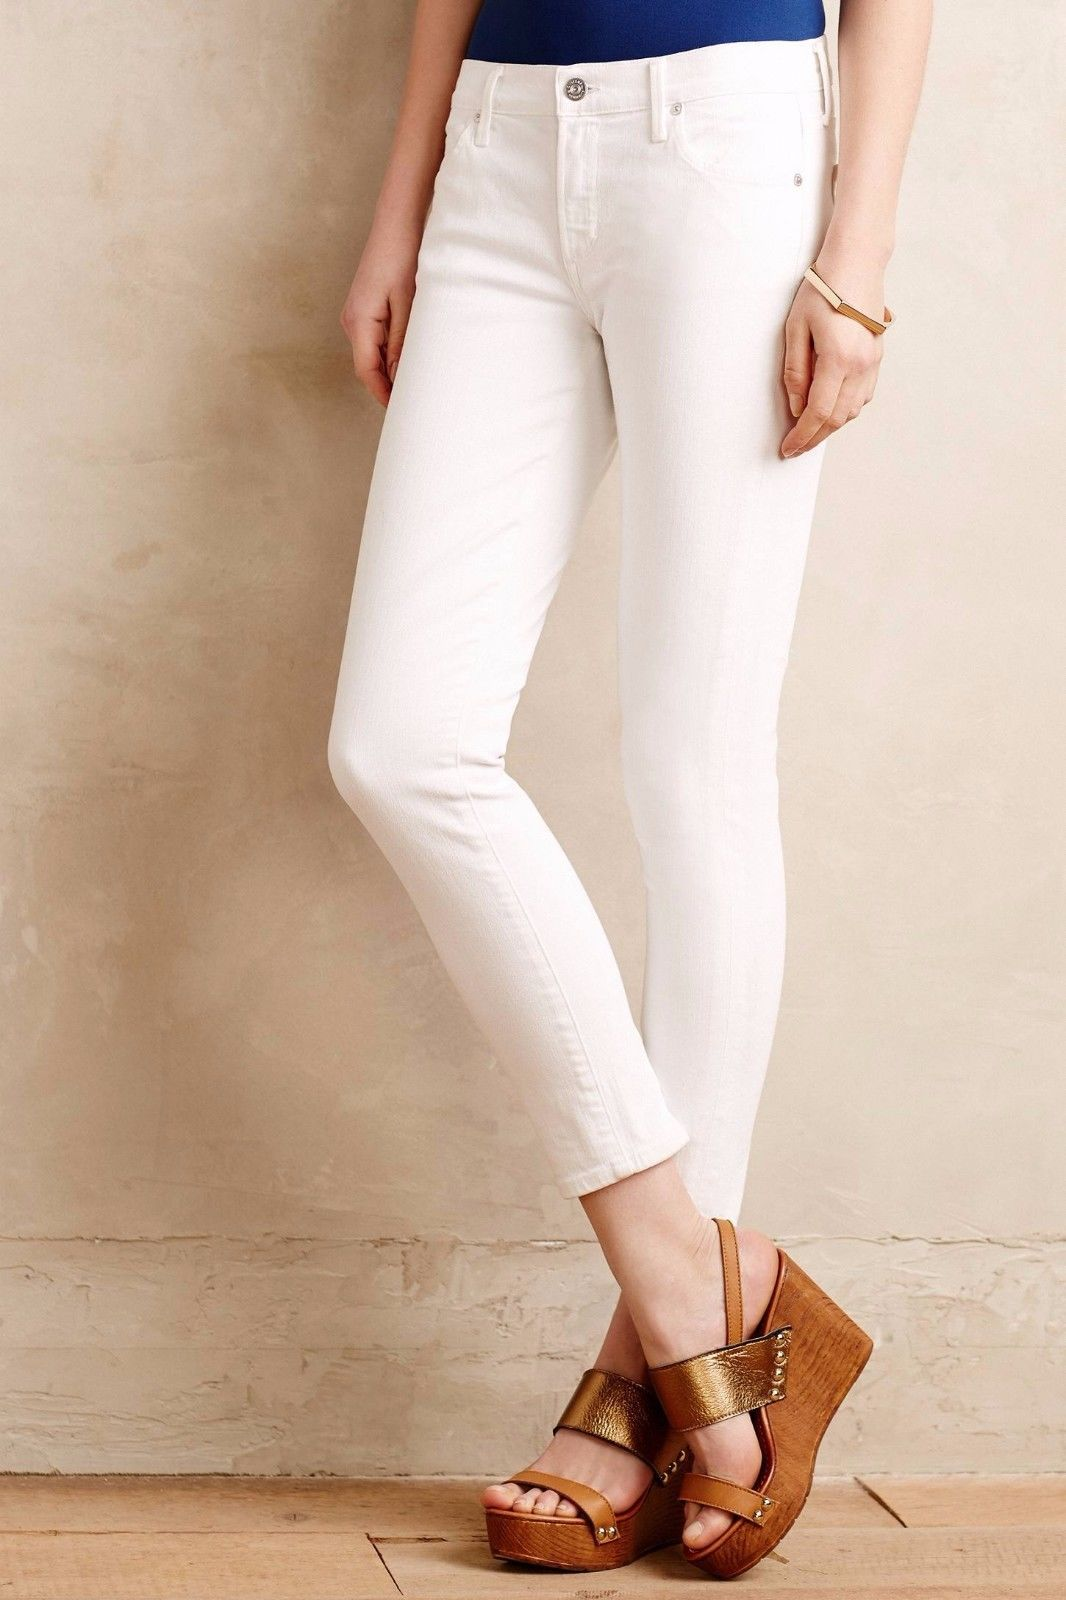 Primary image for NWT CITIZENS of HUMANITY AVEDON ULTRA SKINNY OPTIC WHITE ANKLE JEANS 30